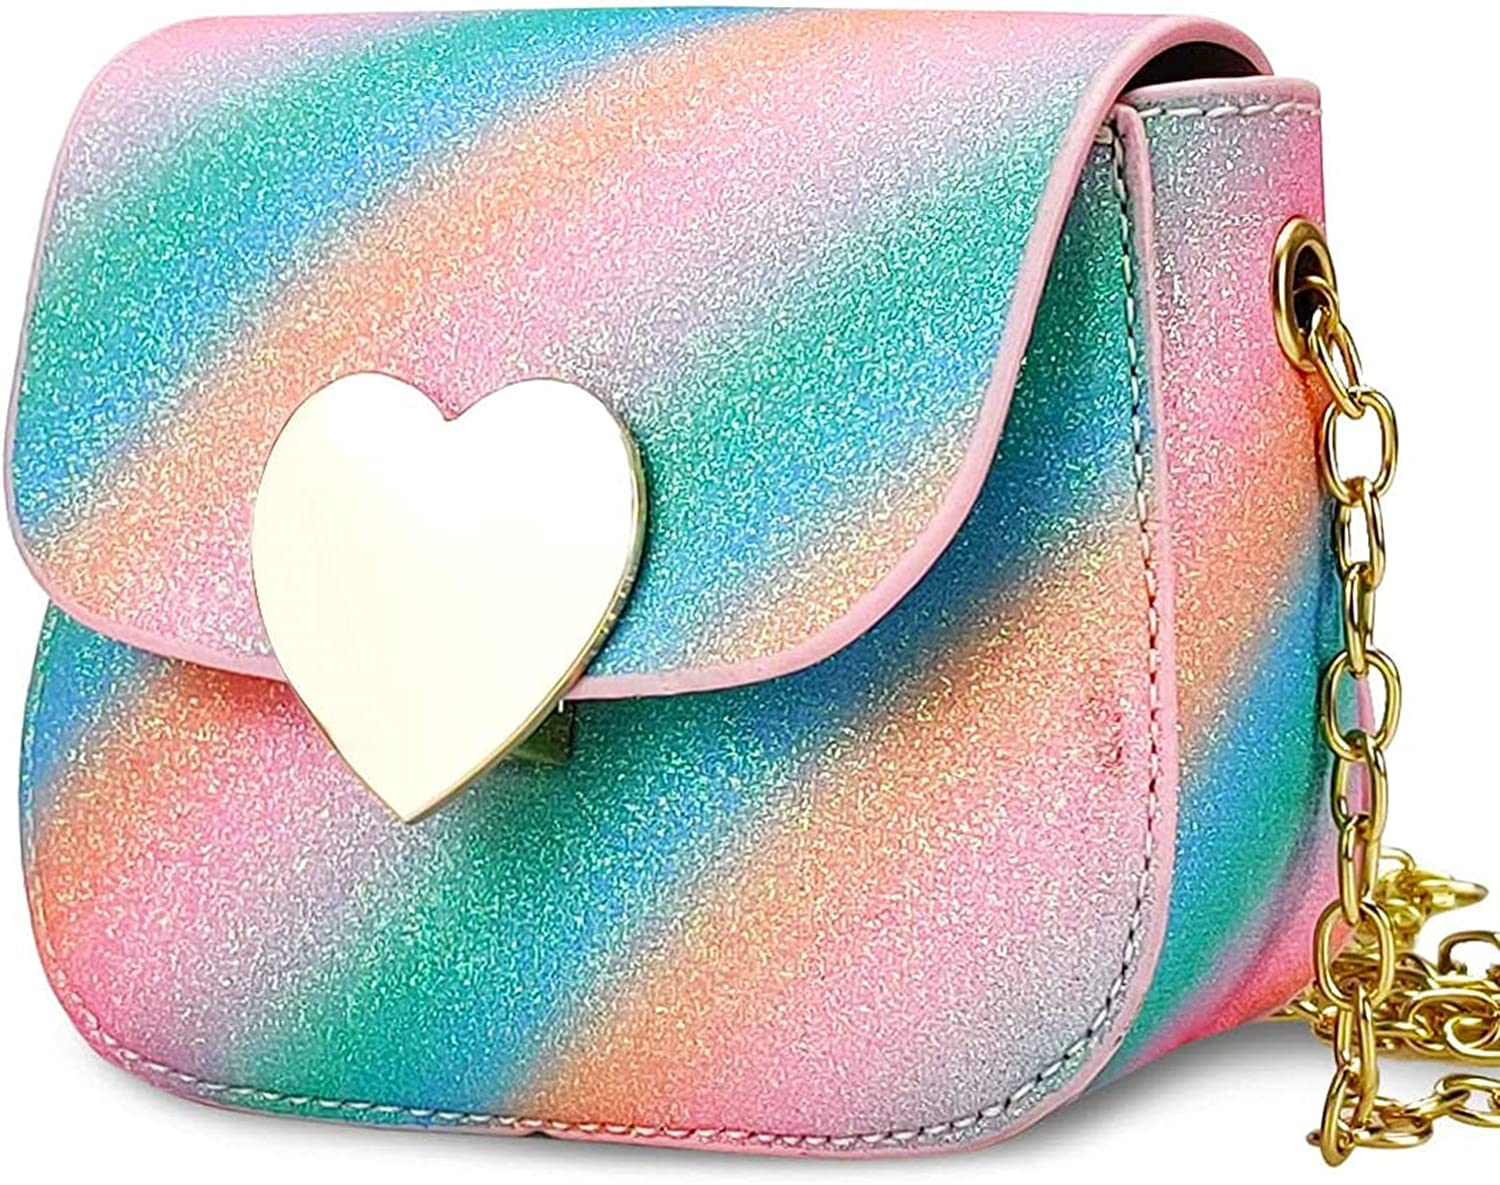 Mini Purse Sale for Toddler Max 61% OFF Little Girls Shape Sparkly Lock Heart Cro